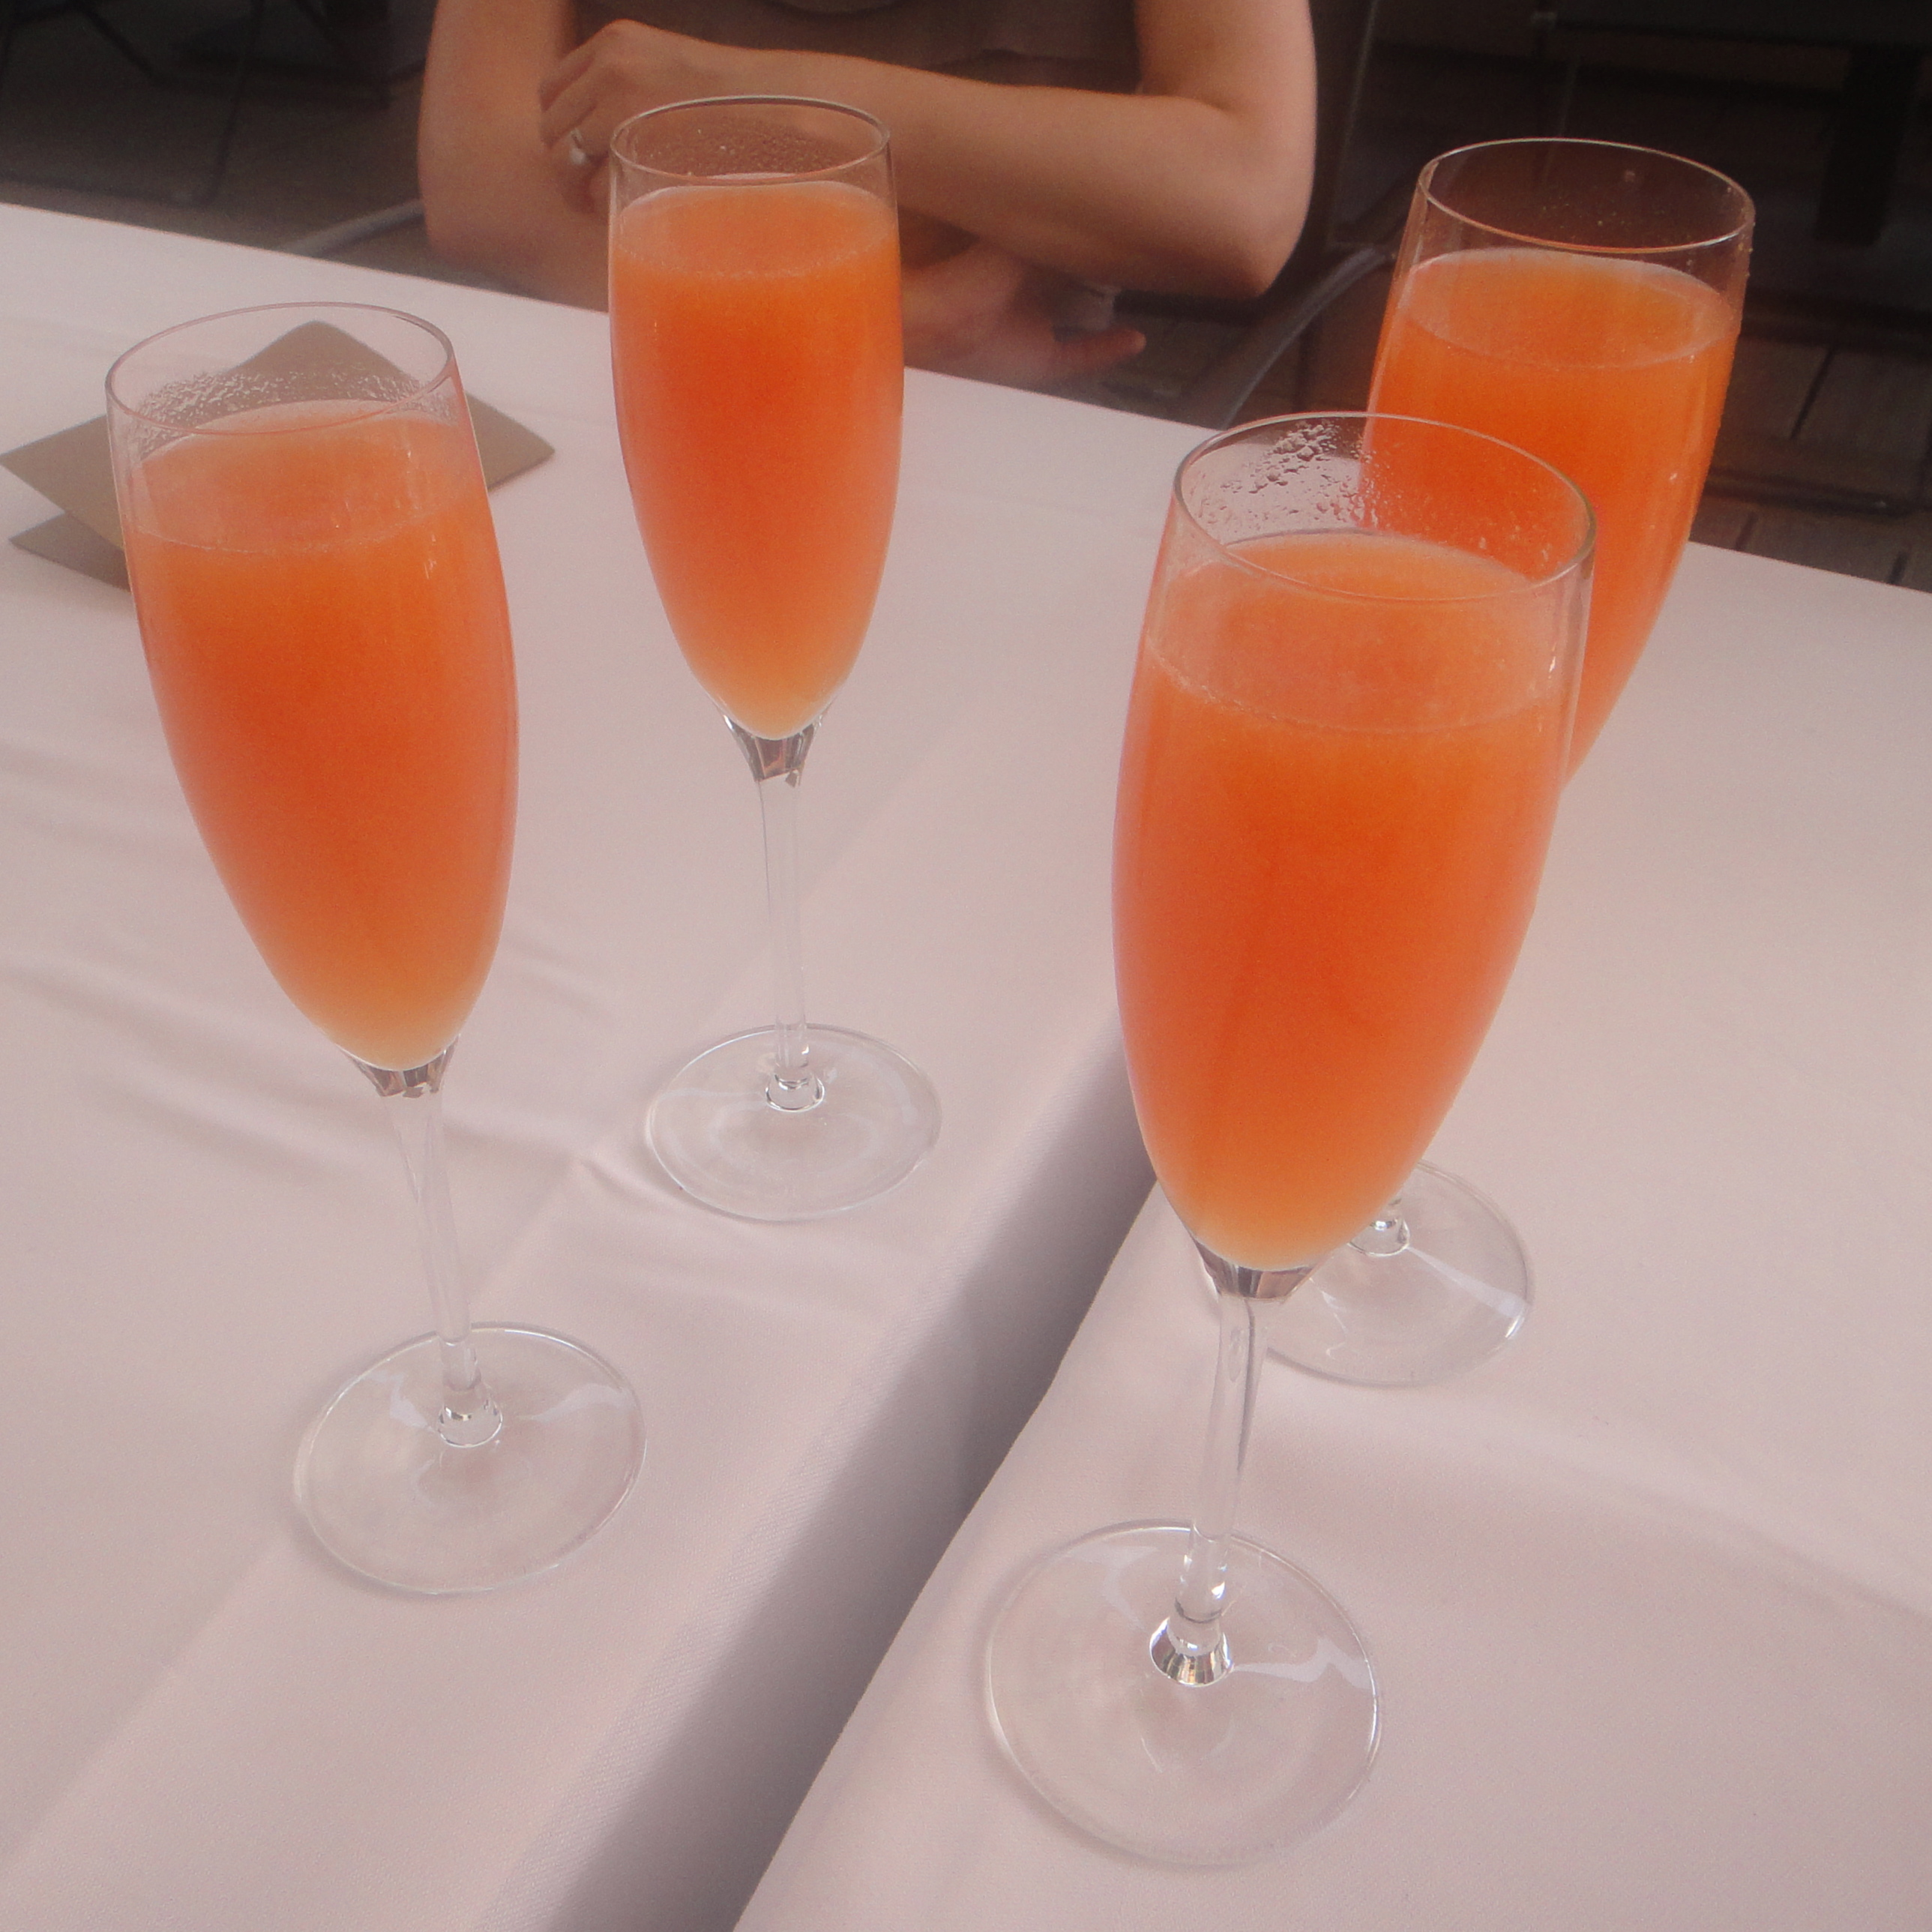 Bellinis for the ladies